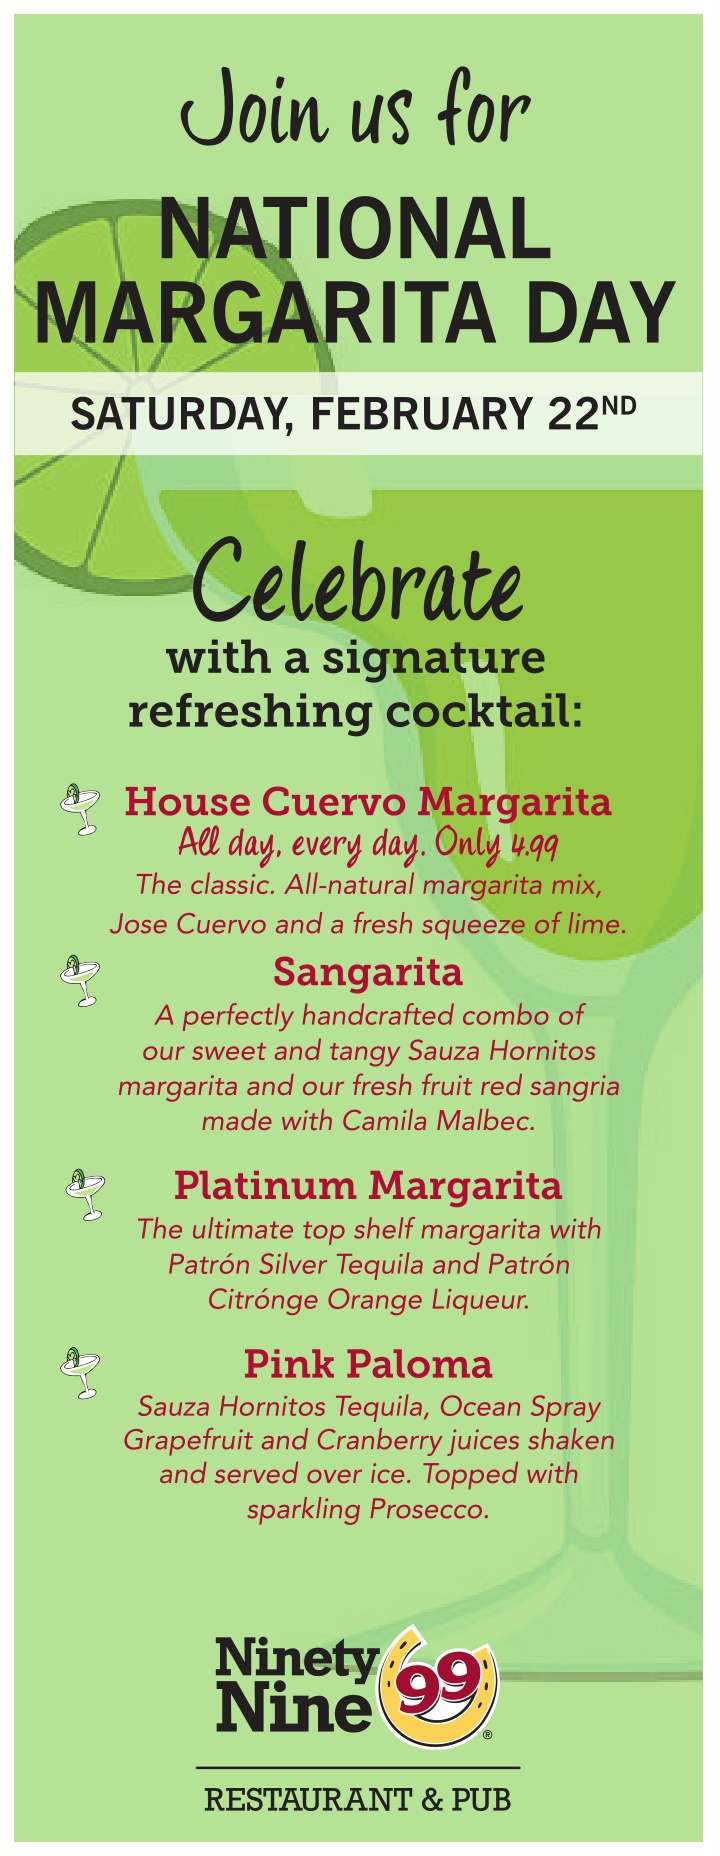 join us for national margarita day